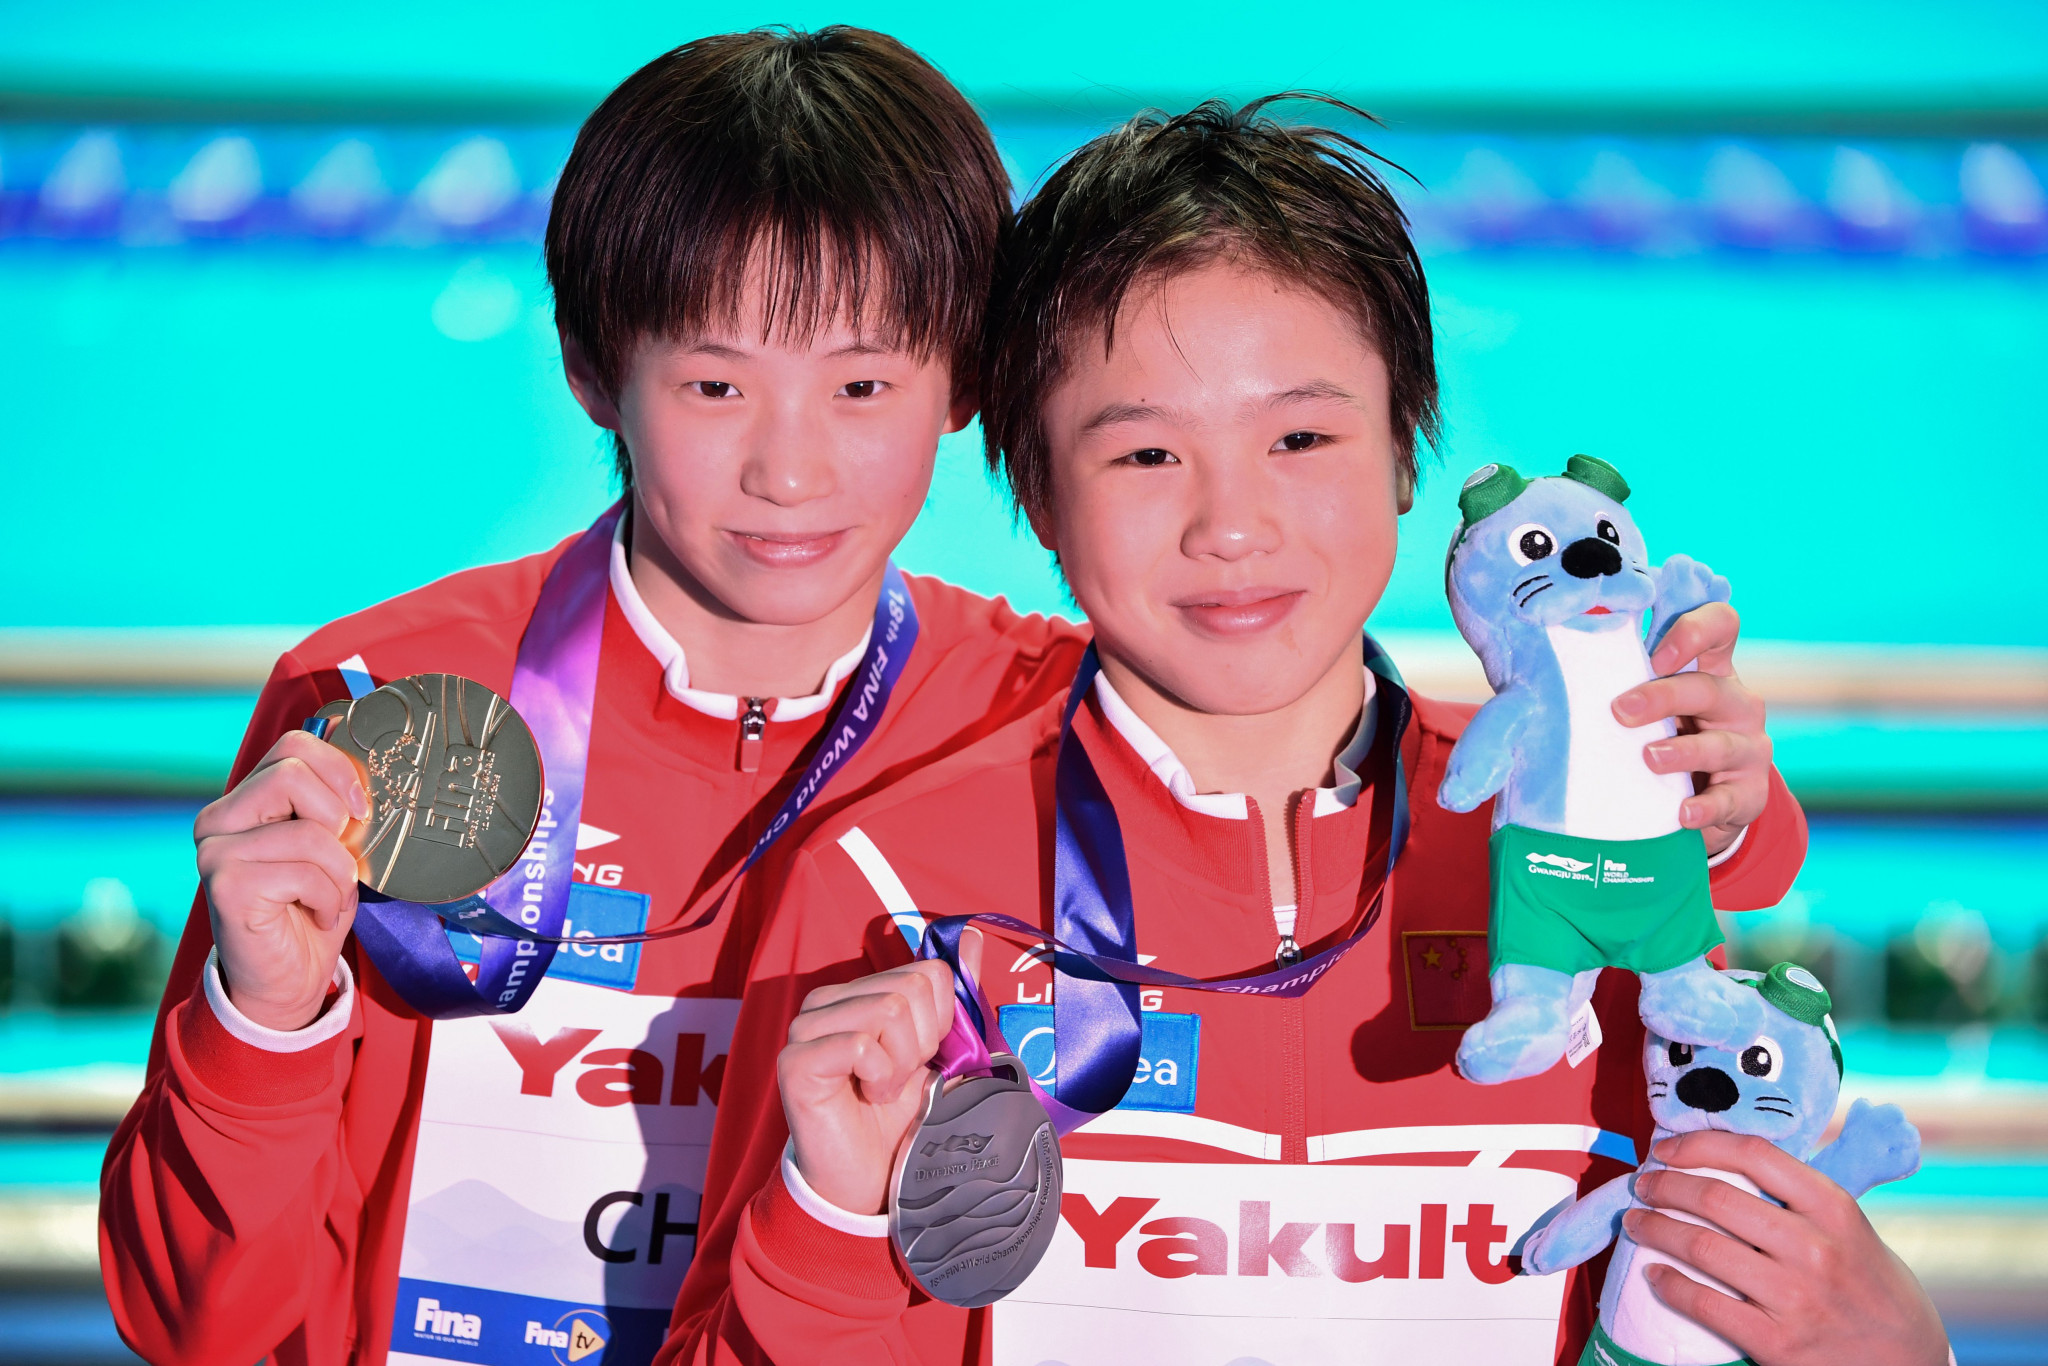 Chinese 13-year-olds lead diving 1-2 at World Aquatics Championships